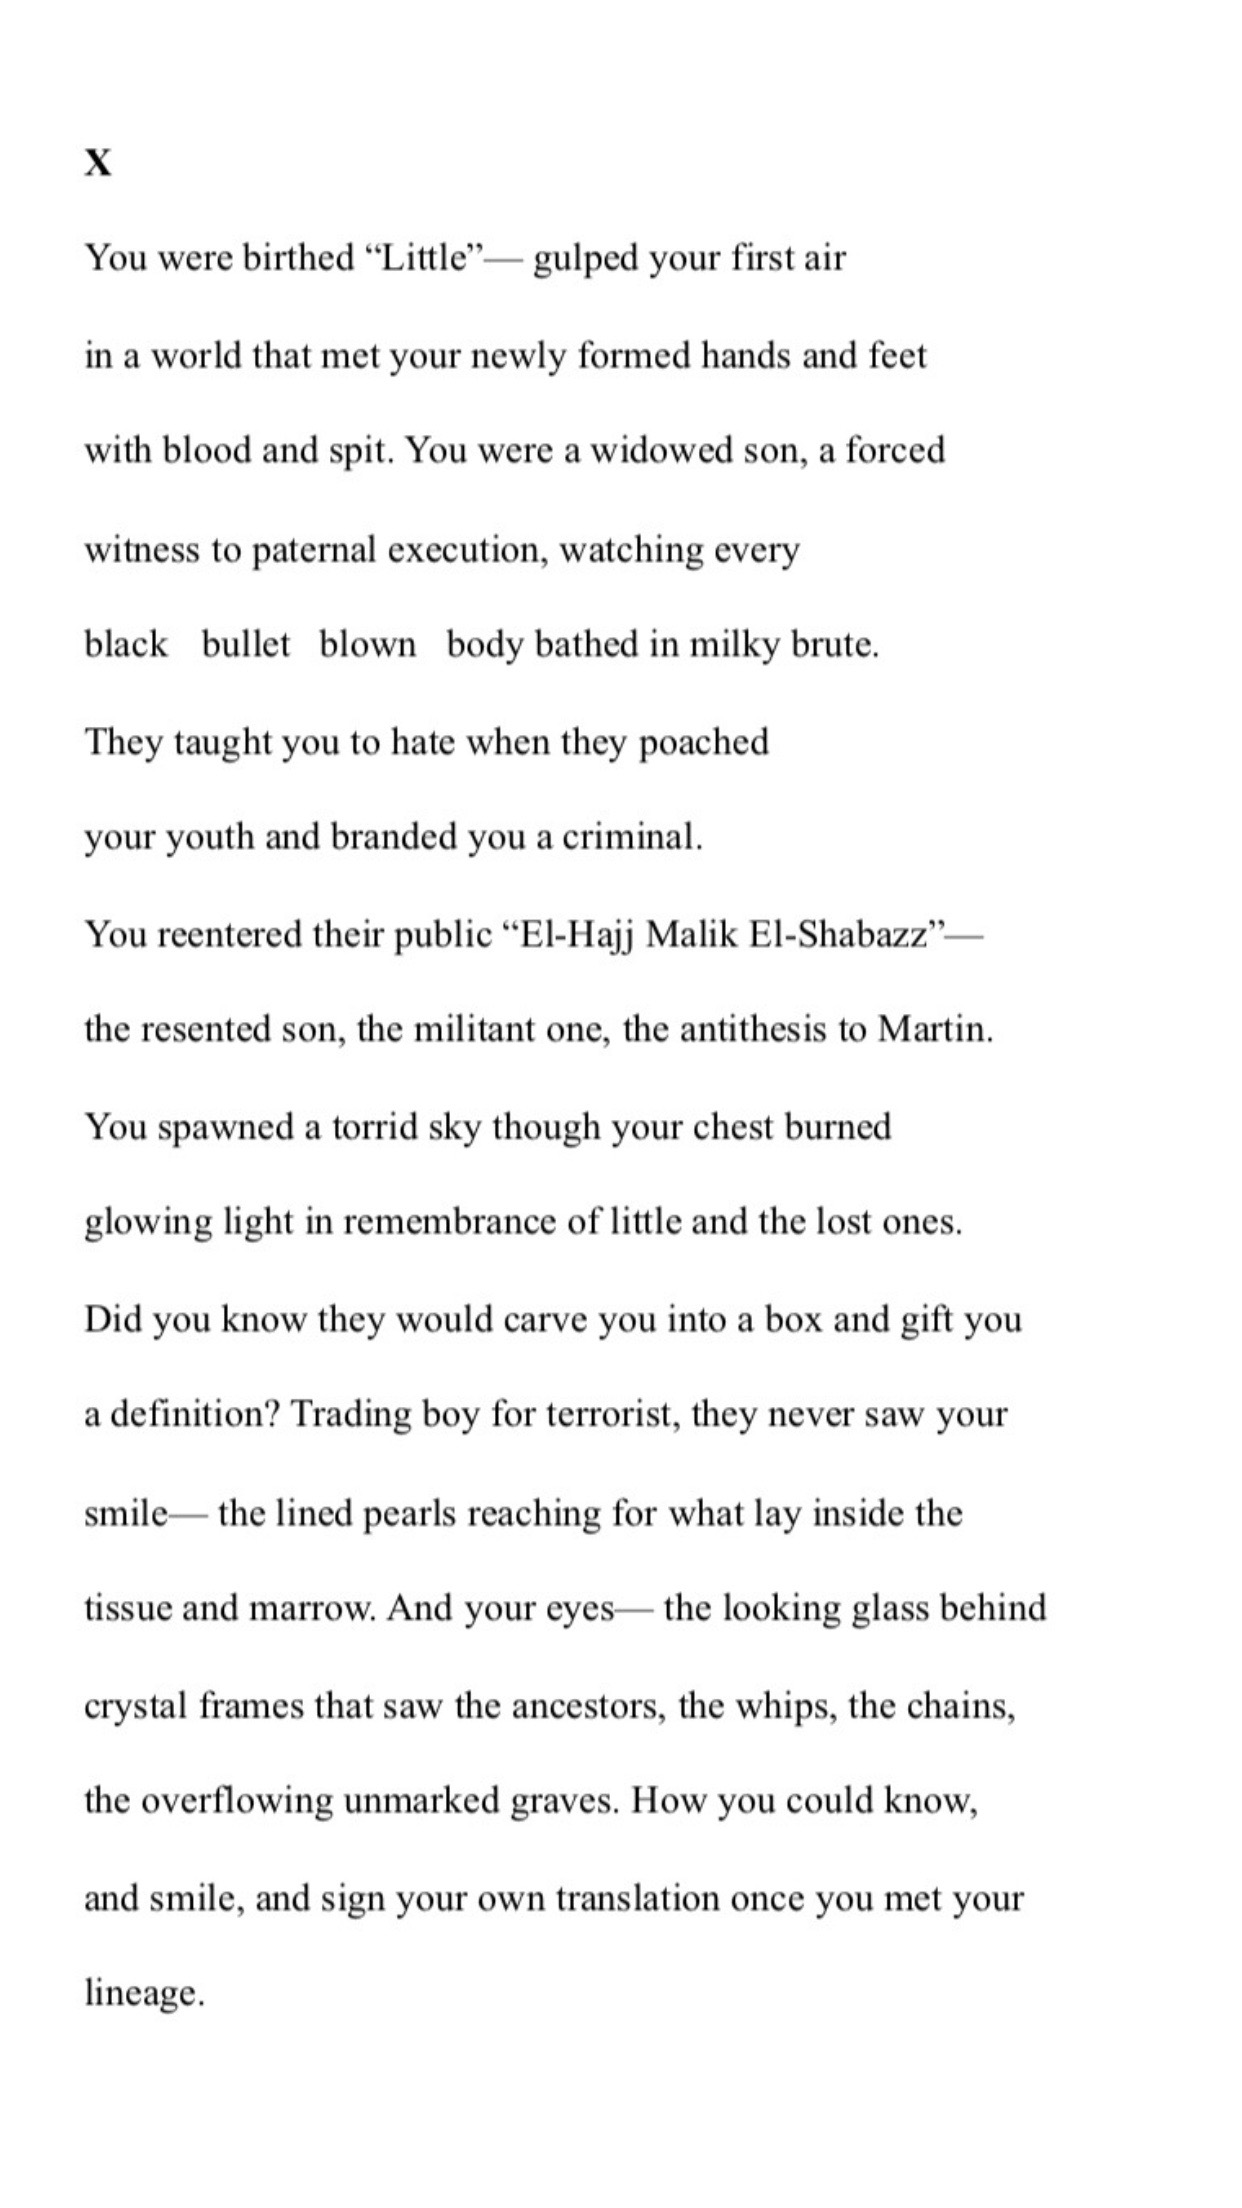 My poem about Malcolm X